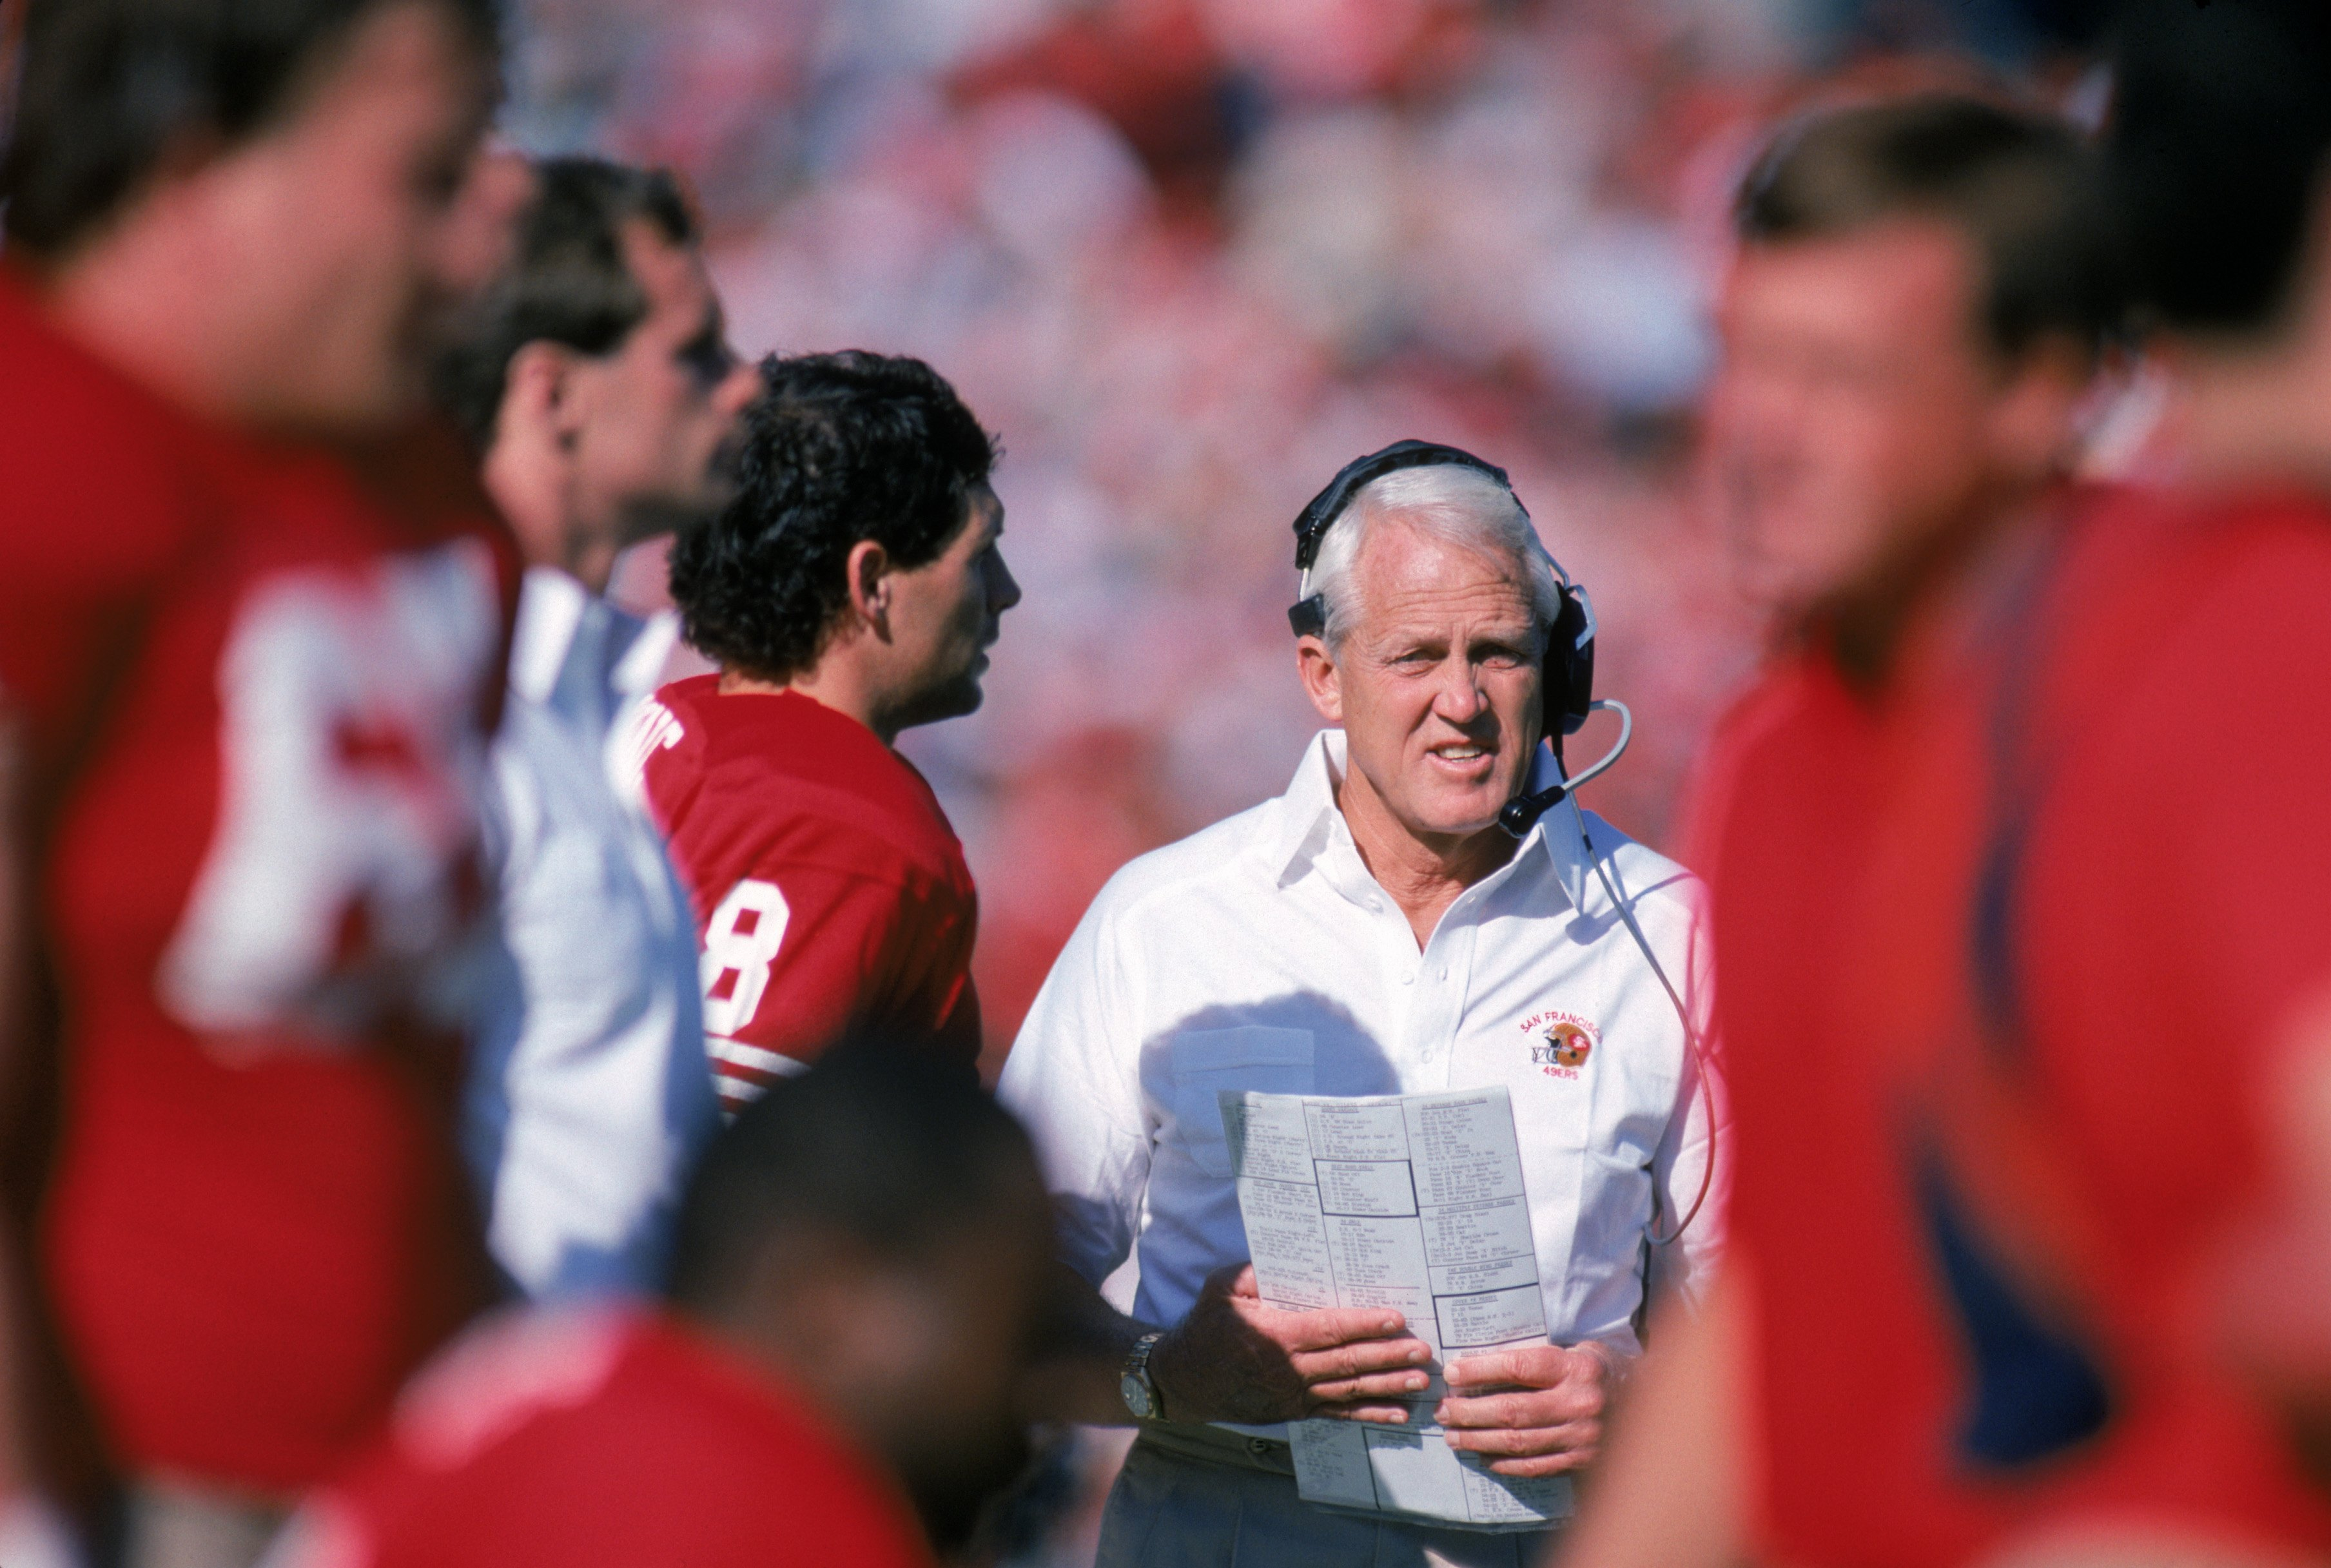 SAN FRANCISCO - NOVEMBER 8:  Head coach Bill Walsh of the San Francisco 49ers stands on the sidelines during a game against the Houston Oilers at Candlestick Park on November 8, 1987 in San Francisco, California.  The 49ers won 27-20.  (Photo by George Ro